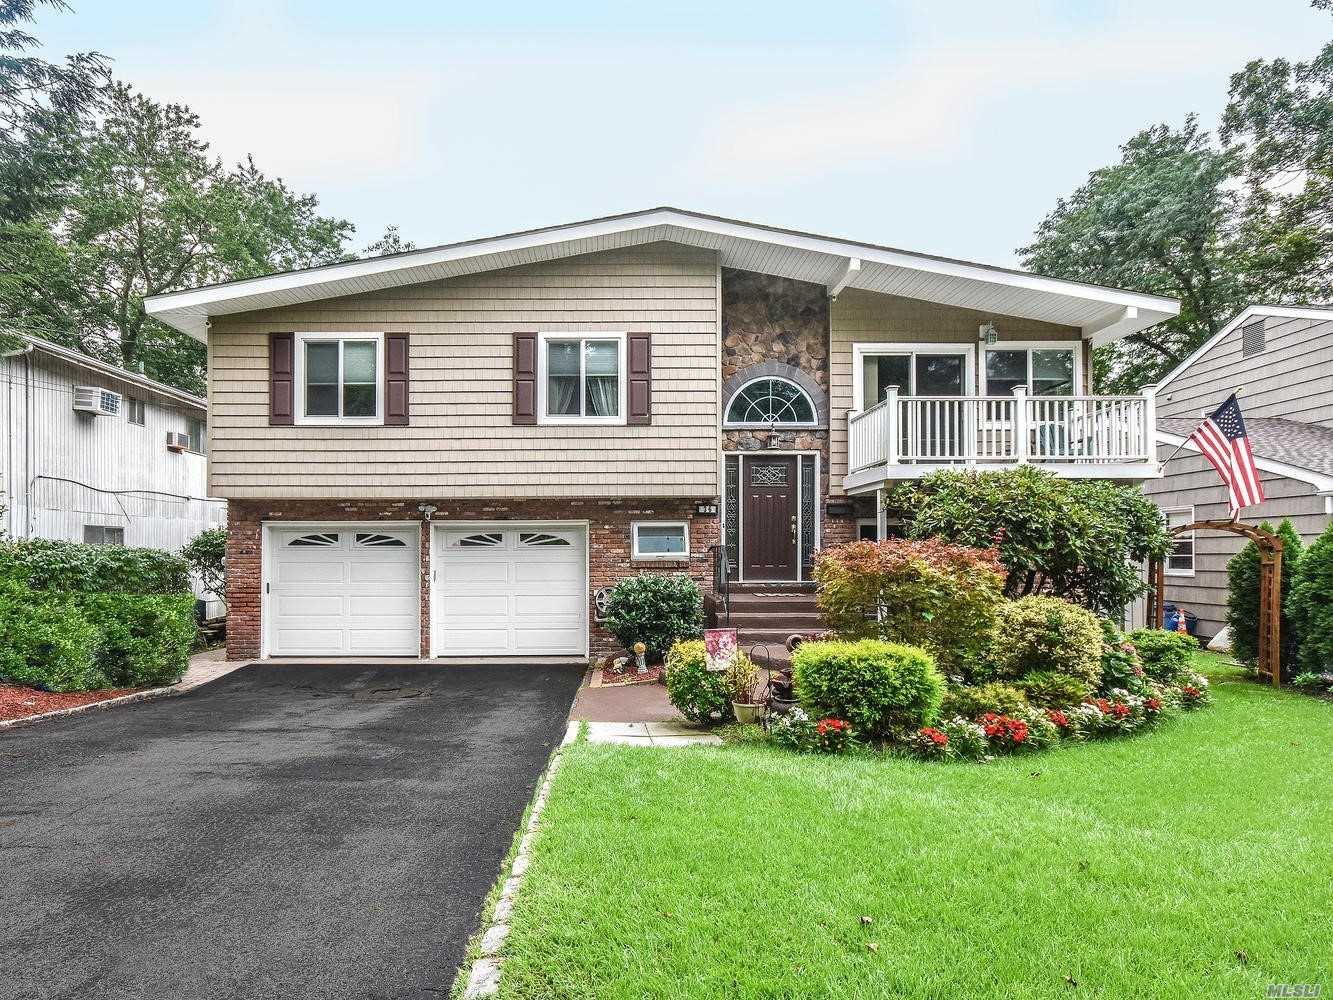 Mint Condition High Ranch All Updated On Quiet Dead End Street. 4 Bedrooms, 2.5 Updated Baths Renovated Kitchen, Dining Room W/Deck Living Room W/Deck, Den, Sunroom/Office, Laundry Room, 2 Car Heated Garage.